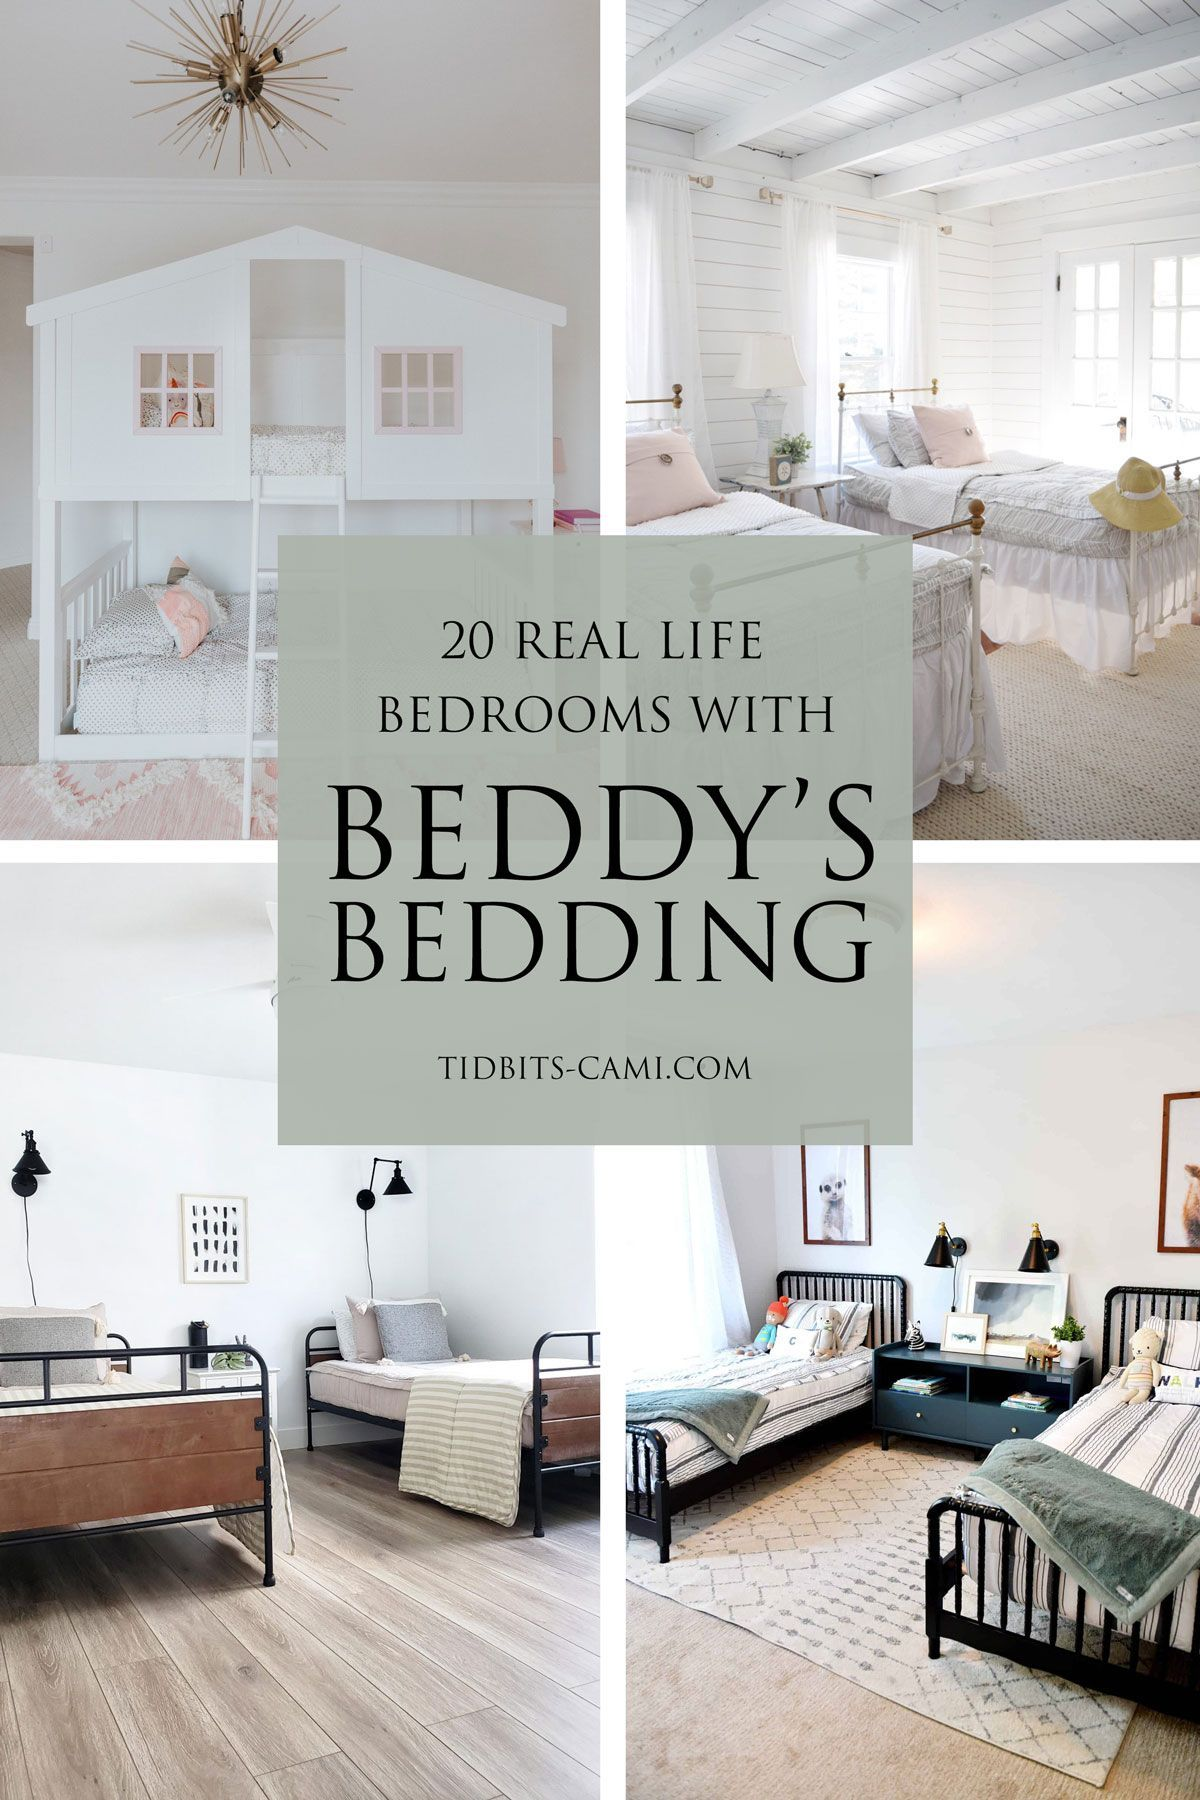 20 Inspiring Bedrooms with Beddy's Bedding | In real life! #beddys #beddysbeds #beddysbedding #camitidbits #kidsbedding #kidsbedroom